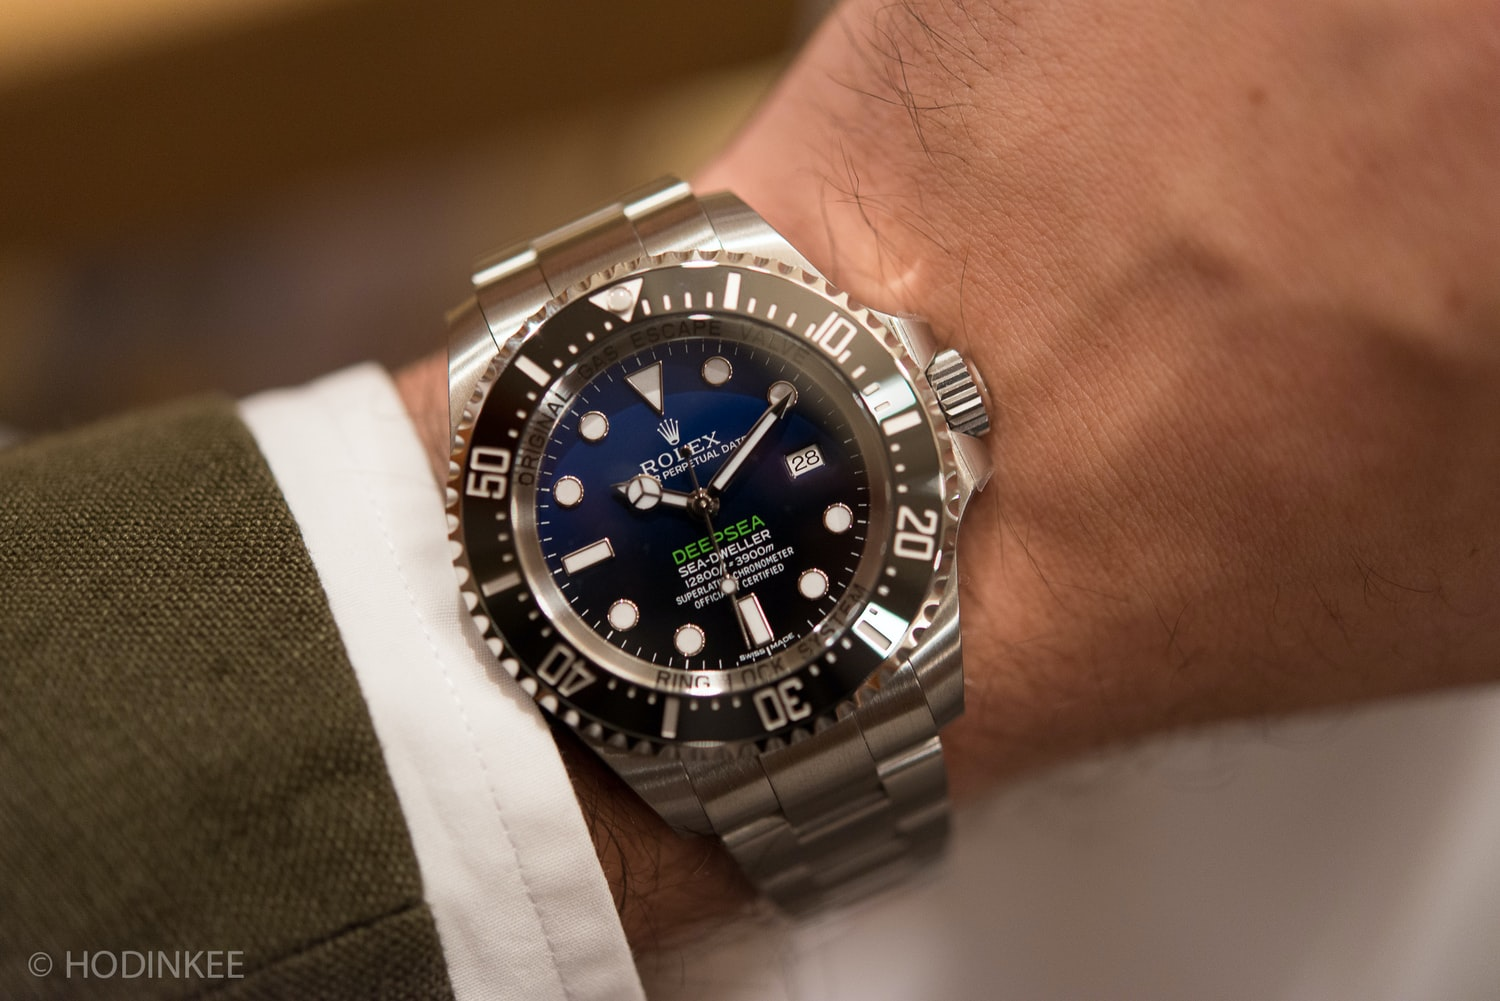 handson with the new rolex deepsea dblue dial edition